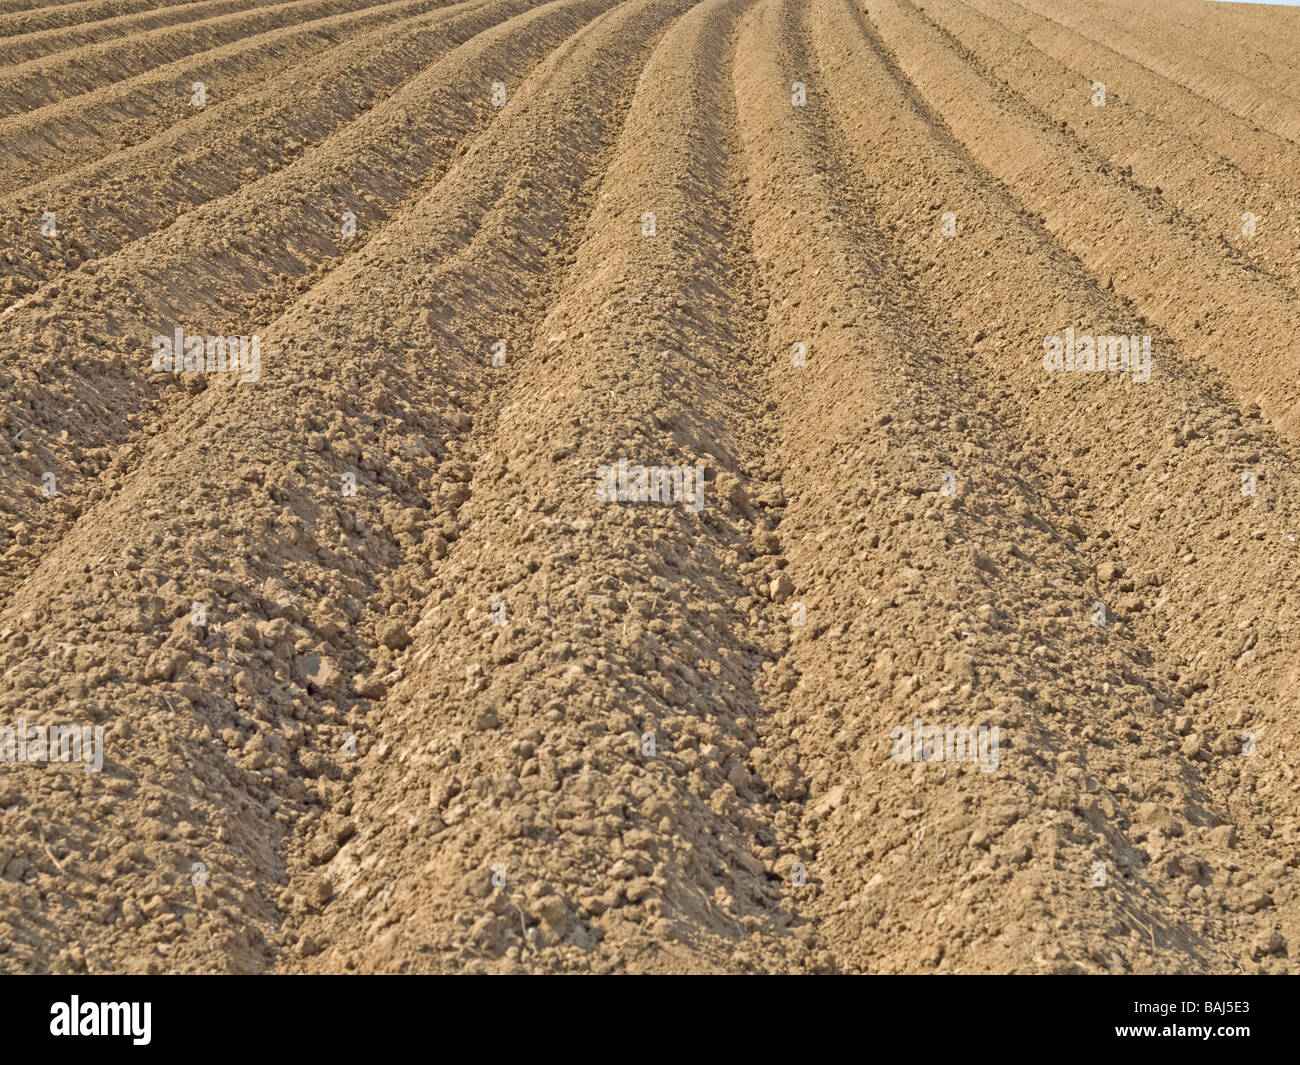 field with earth and new machining grooves in Vogelsberg Hesse Germany - Stock Image